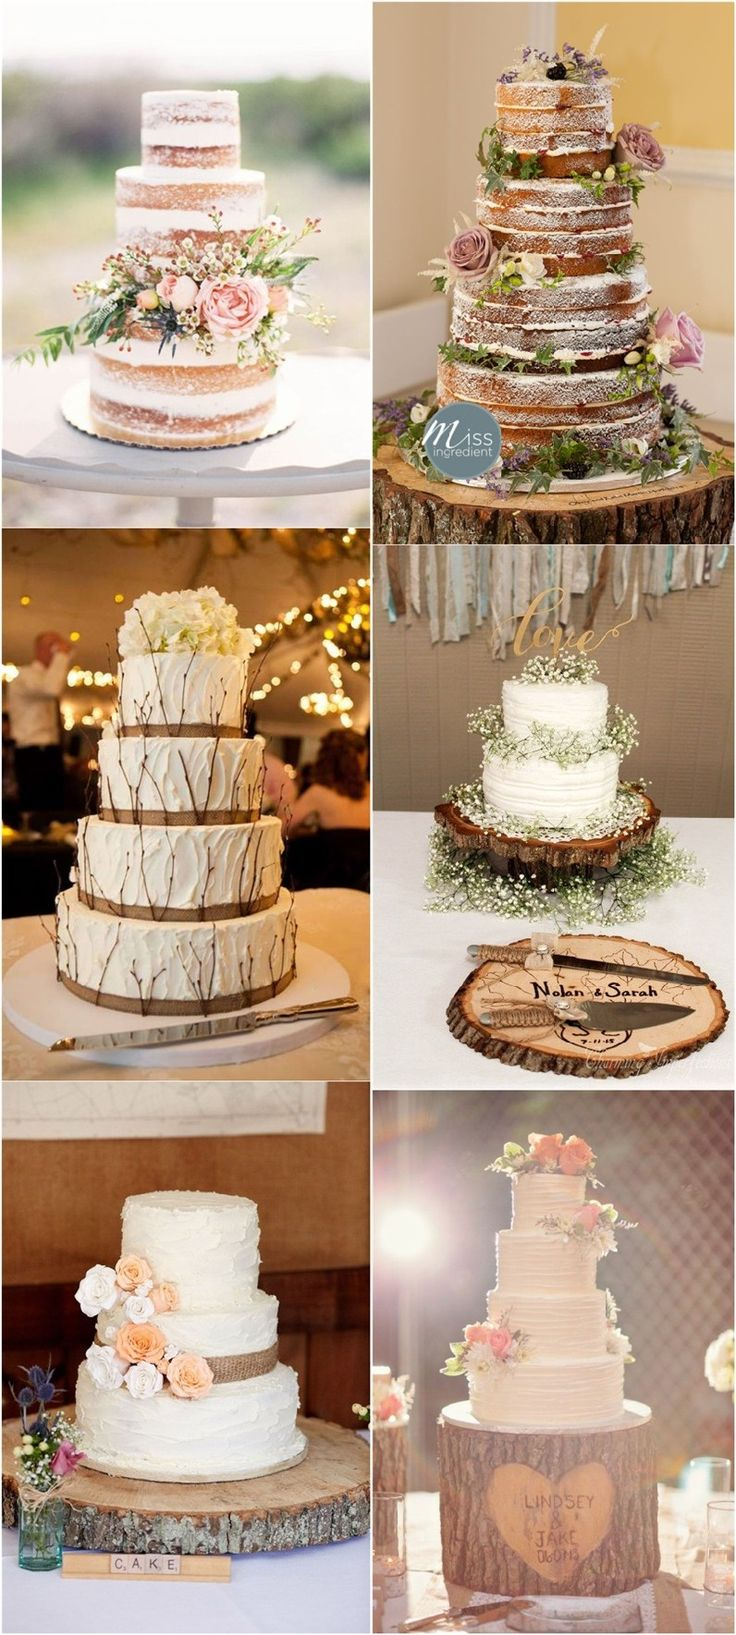 Vintage naked ructic wedding cakes with burlap